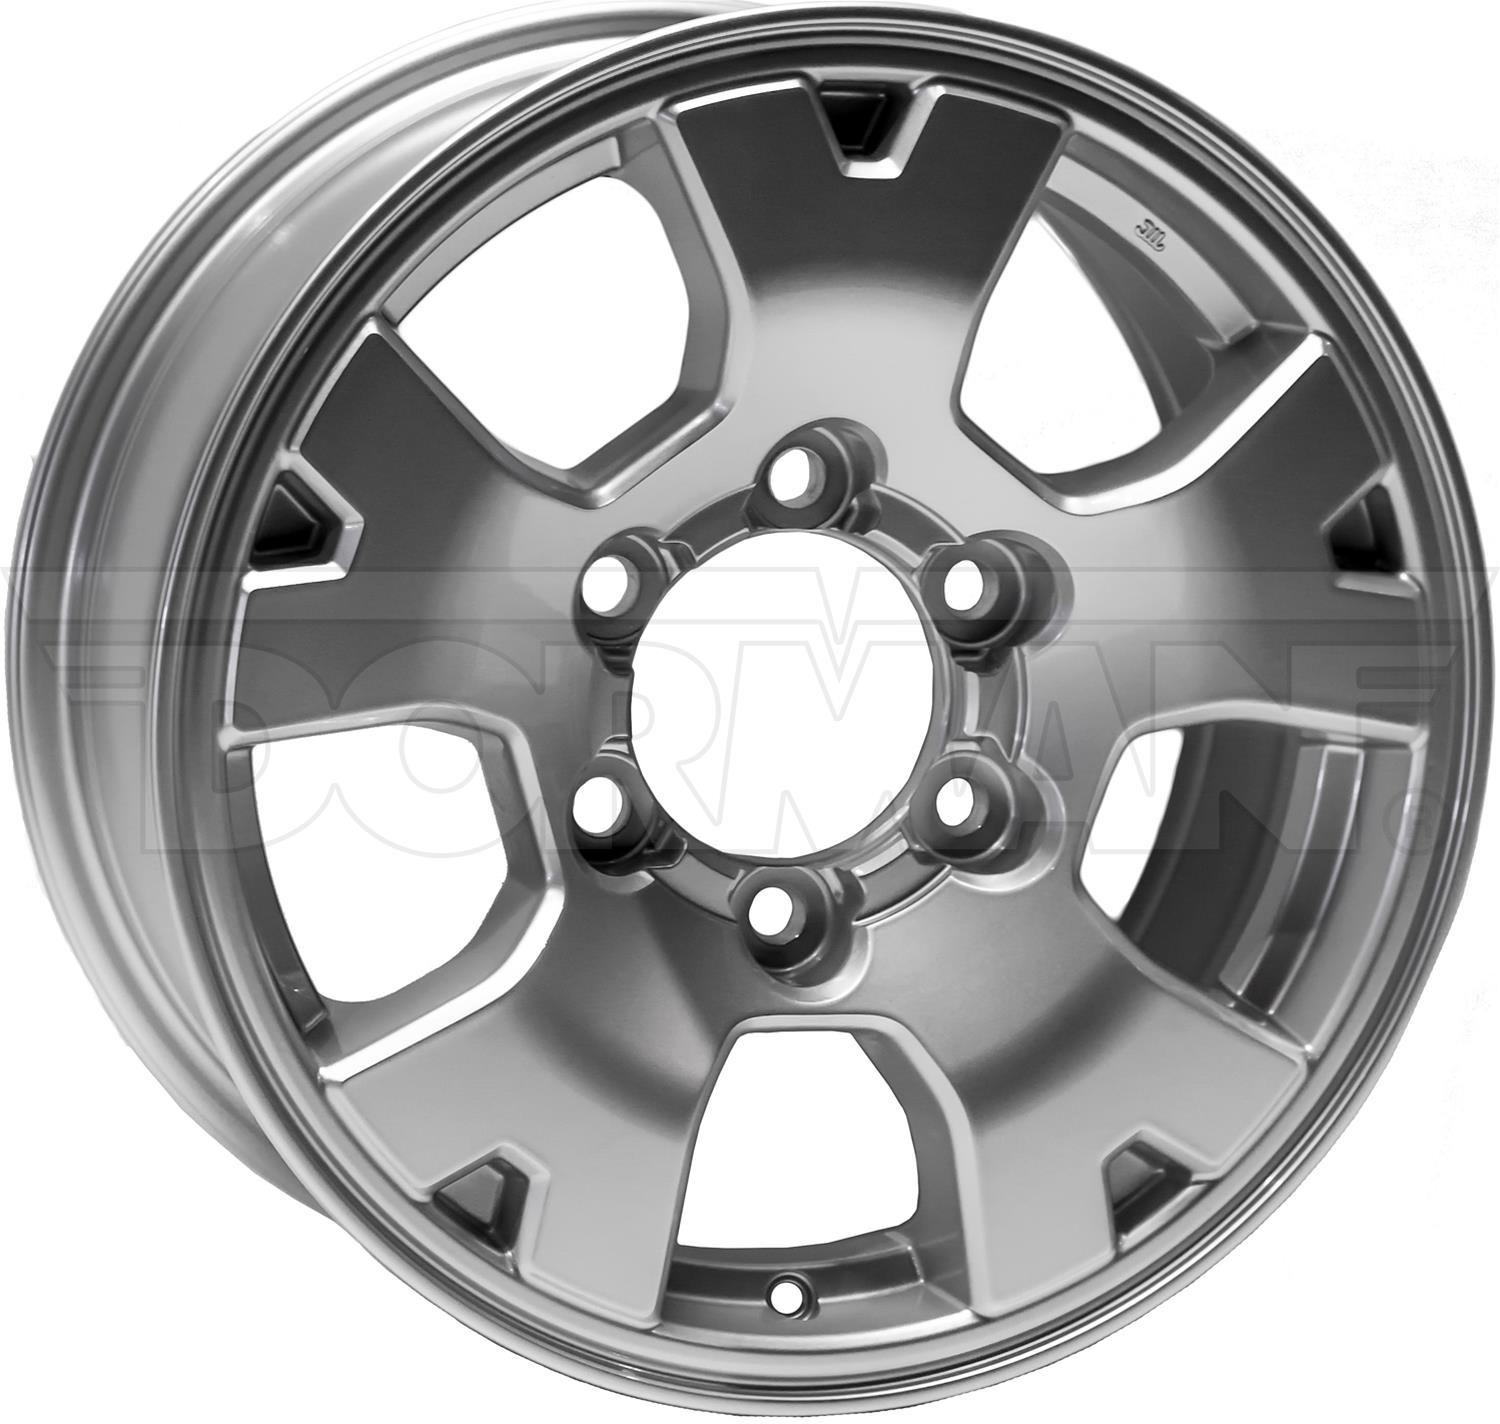 dorman oe replacement wheels 939 614 free shipping on orders over 1974 Jeep PPG Colors dorman oe replacement wheels 939 614 free shipping on orders over 99 at summit racing